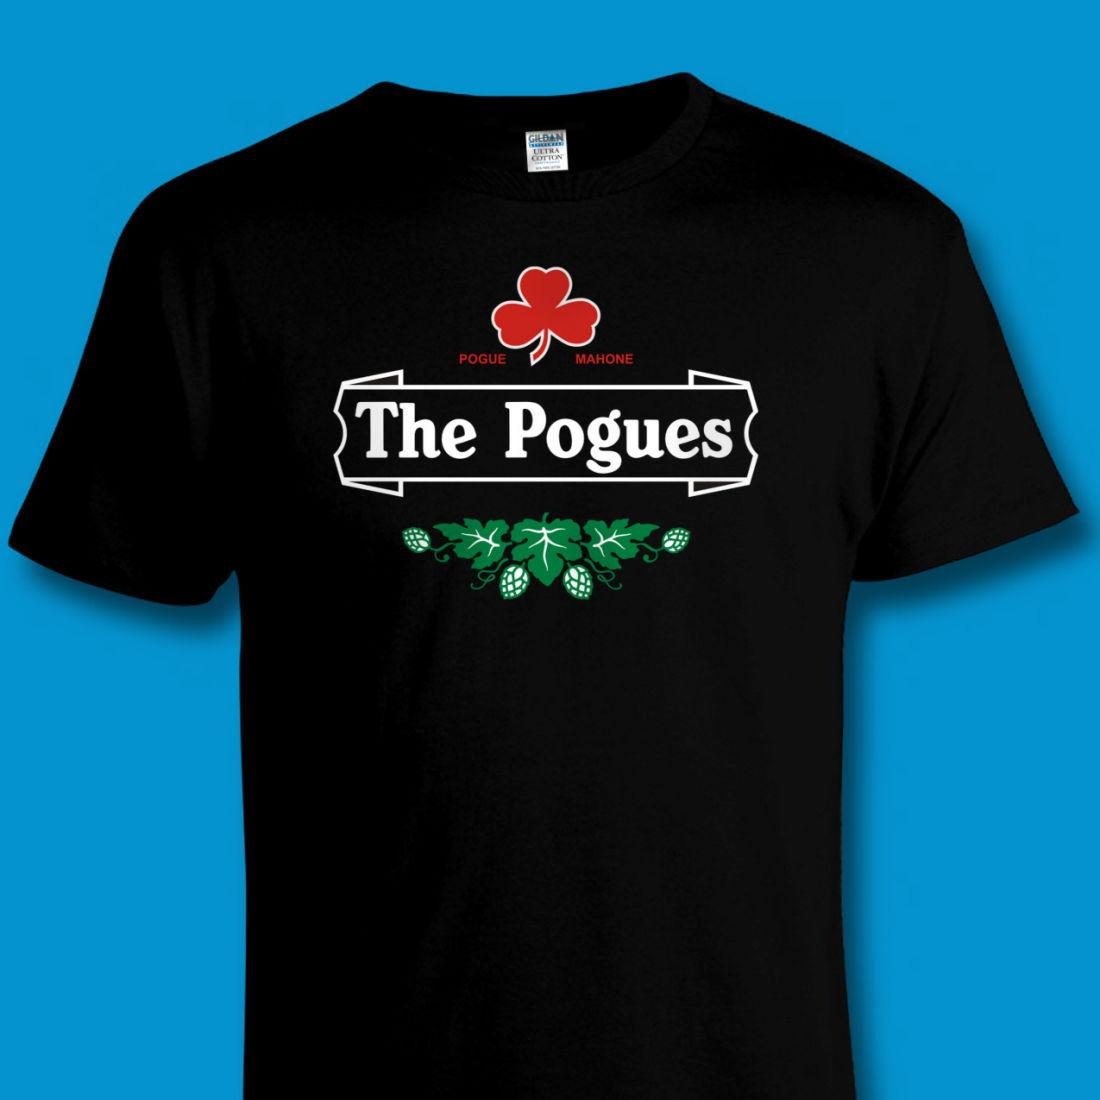 18fed194 Funny Irish Punk Music / 'the Pogues' Beer Mash - Up Tribute T Shirt Sizes  To 4xl New T Shirts Funny Tops Tee New Unisex Funny